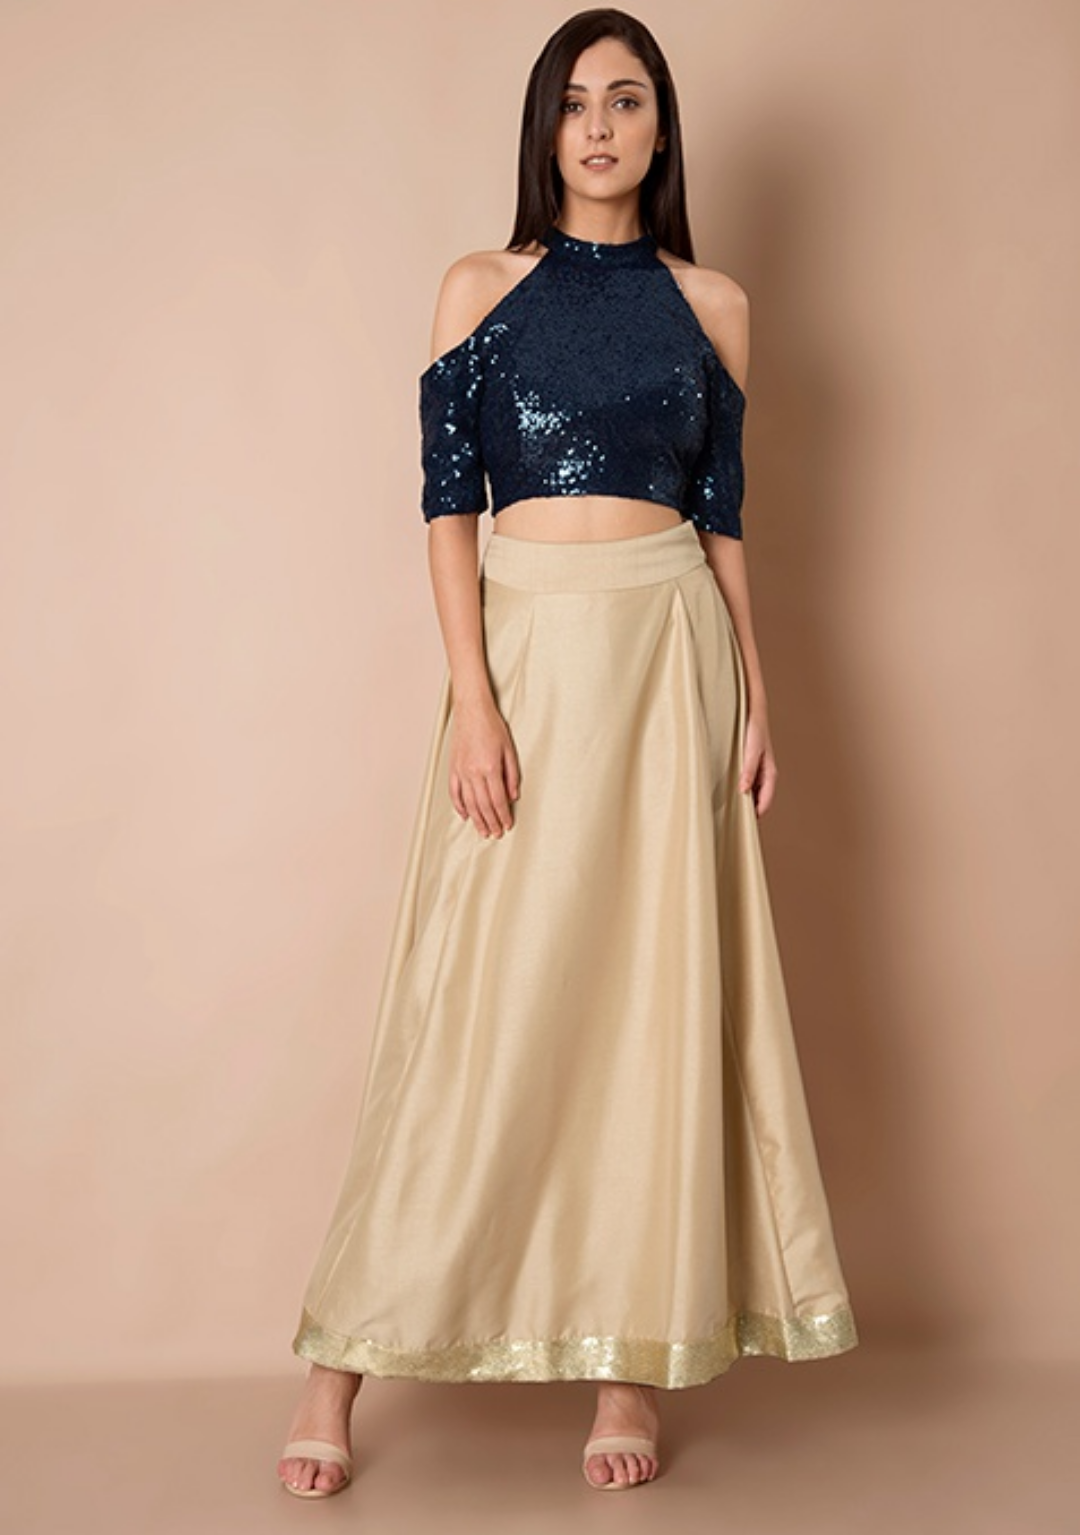 faballey inspired stylish Ethnic wear ideas for this festive season